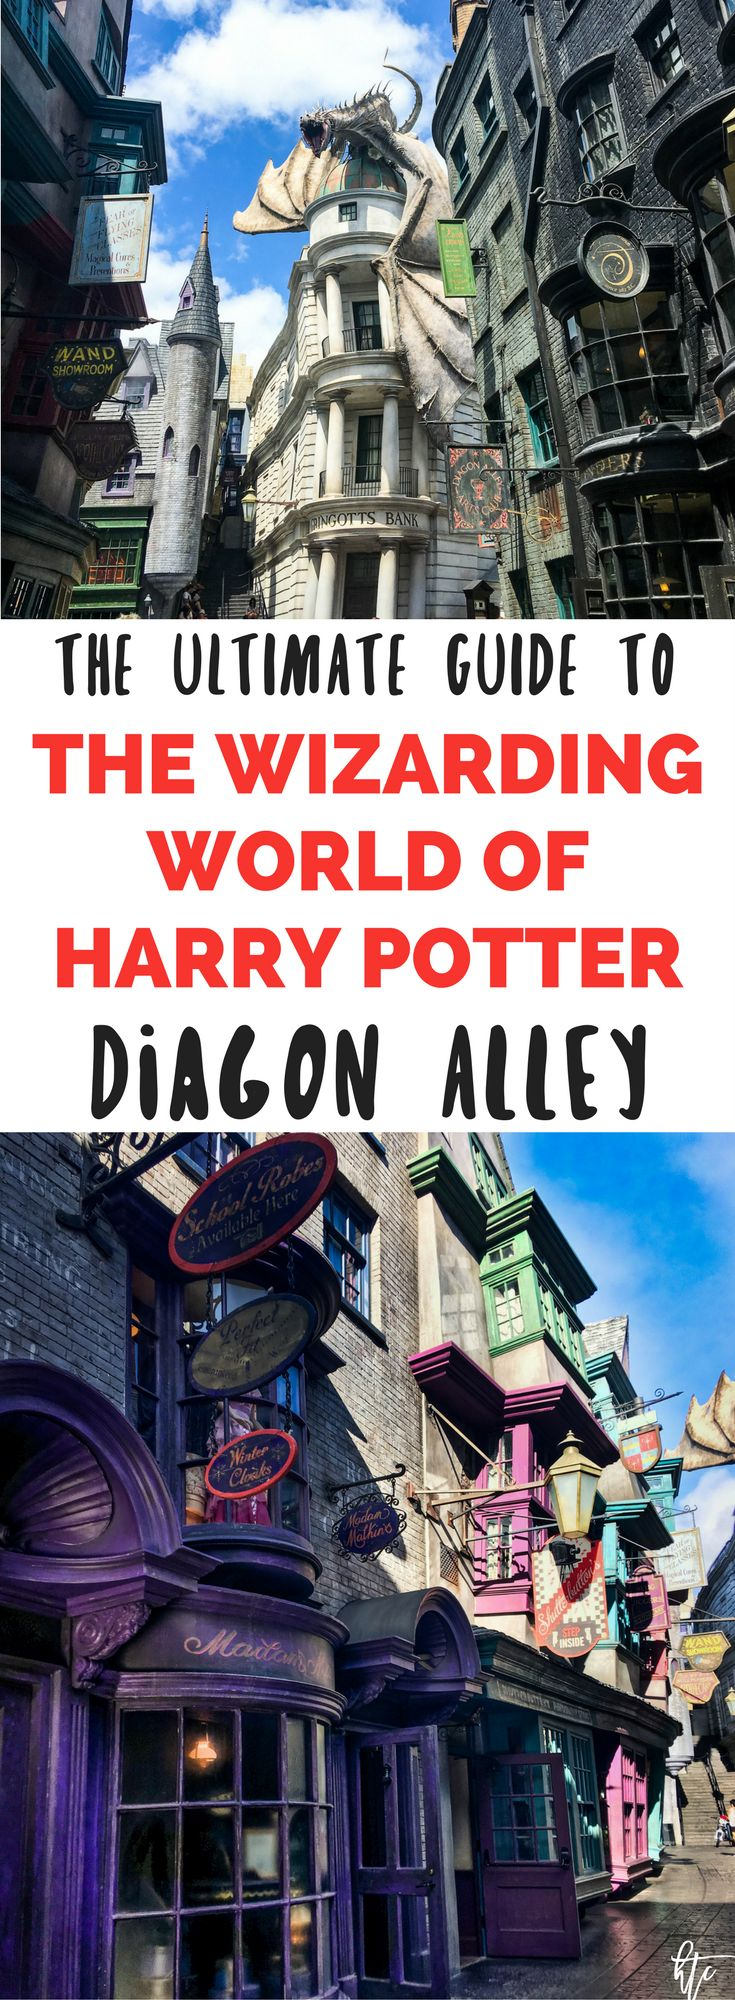 Visit the Wizarding World of Harry Potter in Orlando, Florida at Universal Studios with this ultimate guide. Harry Potter World Tips and Tricks to make ensure you ride all the rides and see all the amazing details!